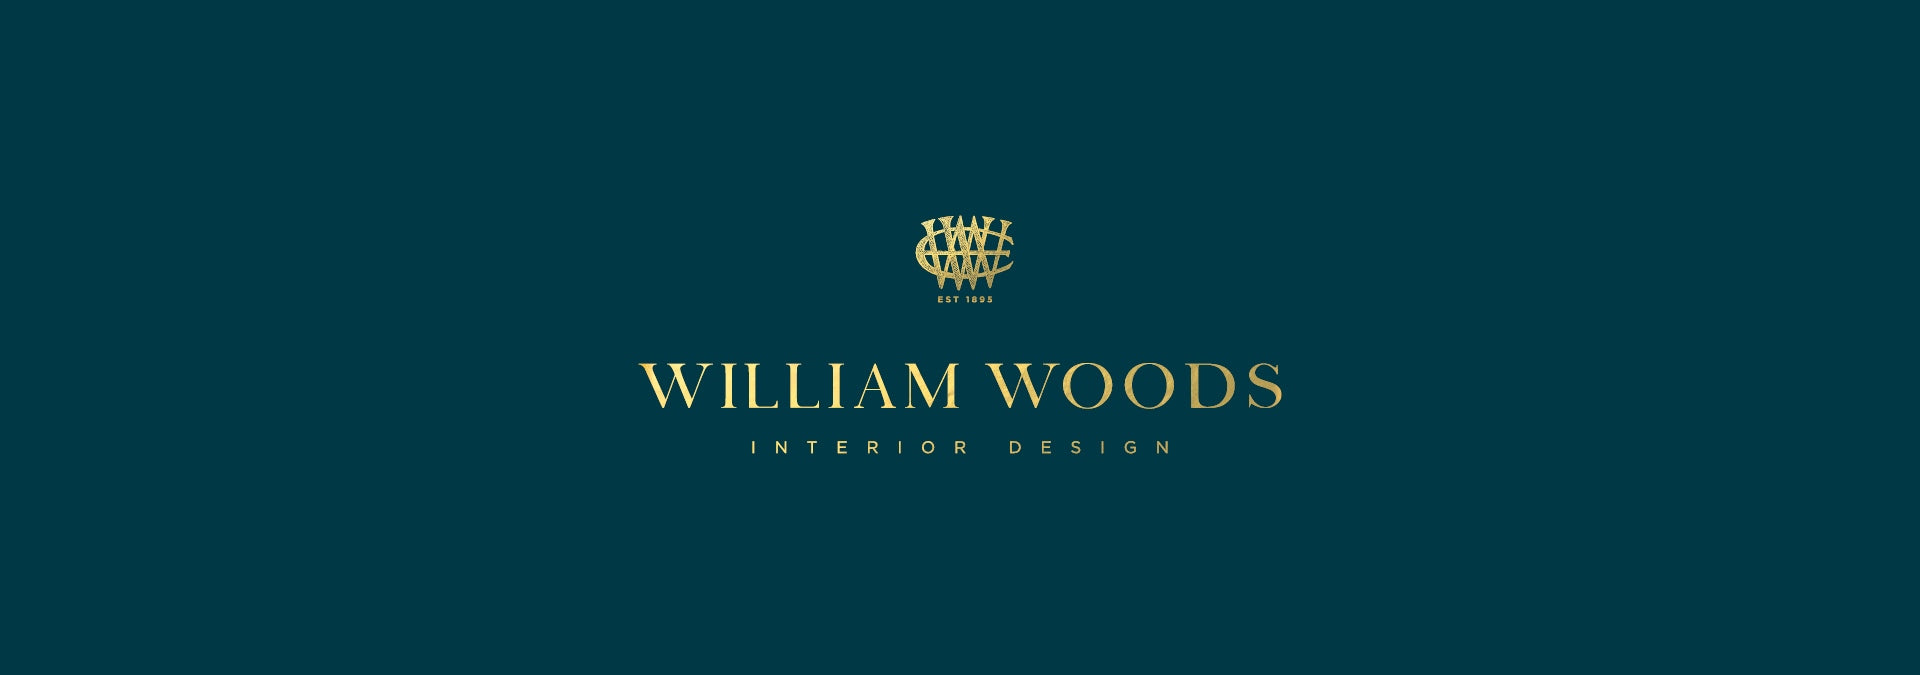 William Woods Interior Design